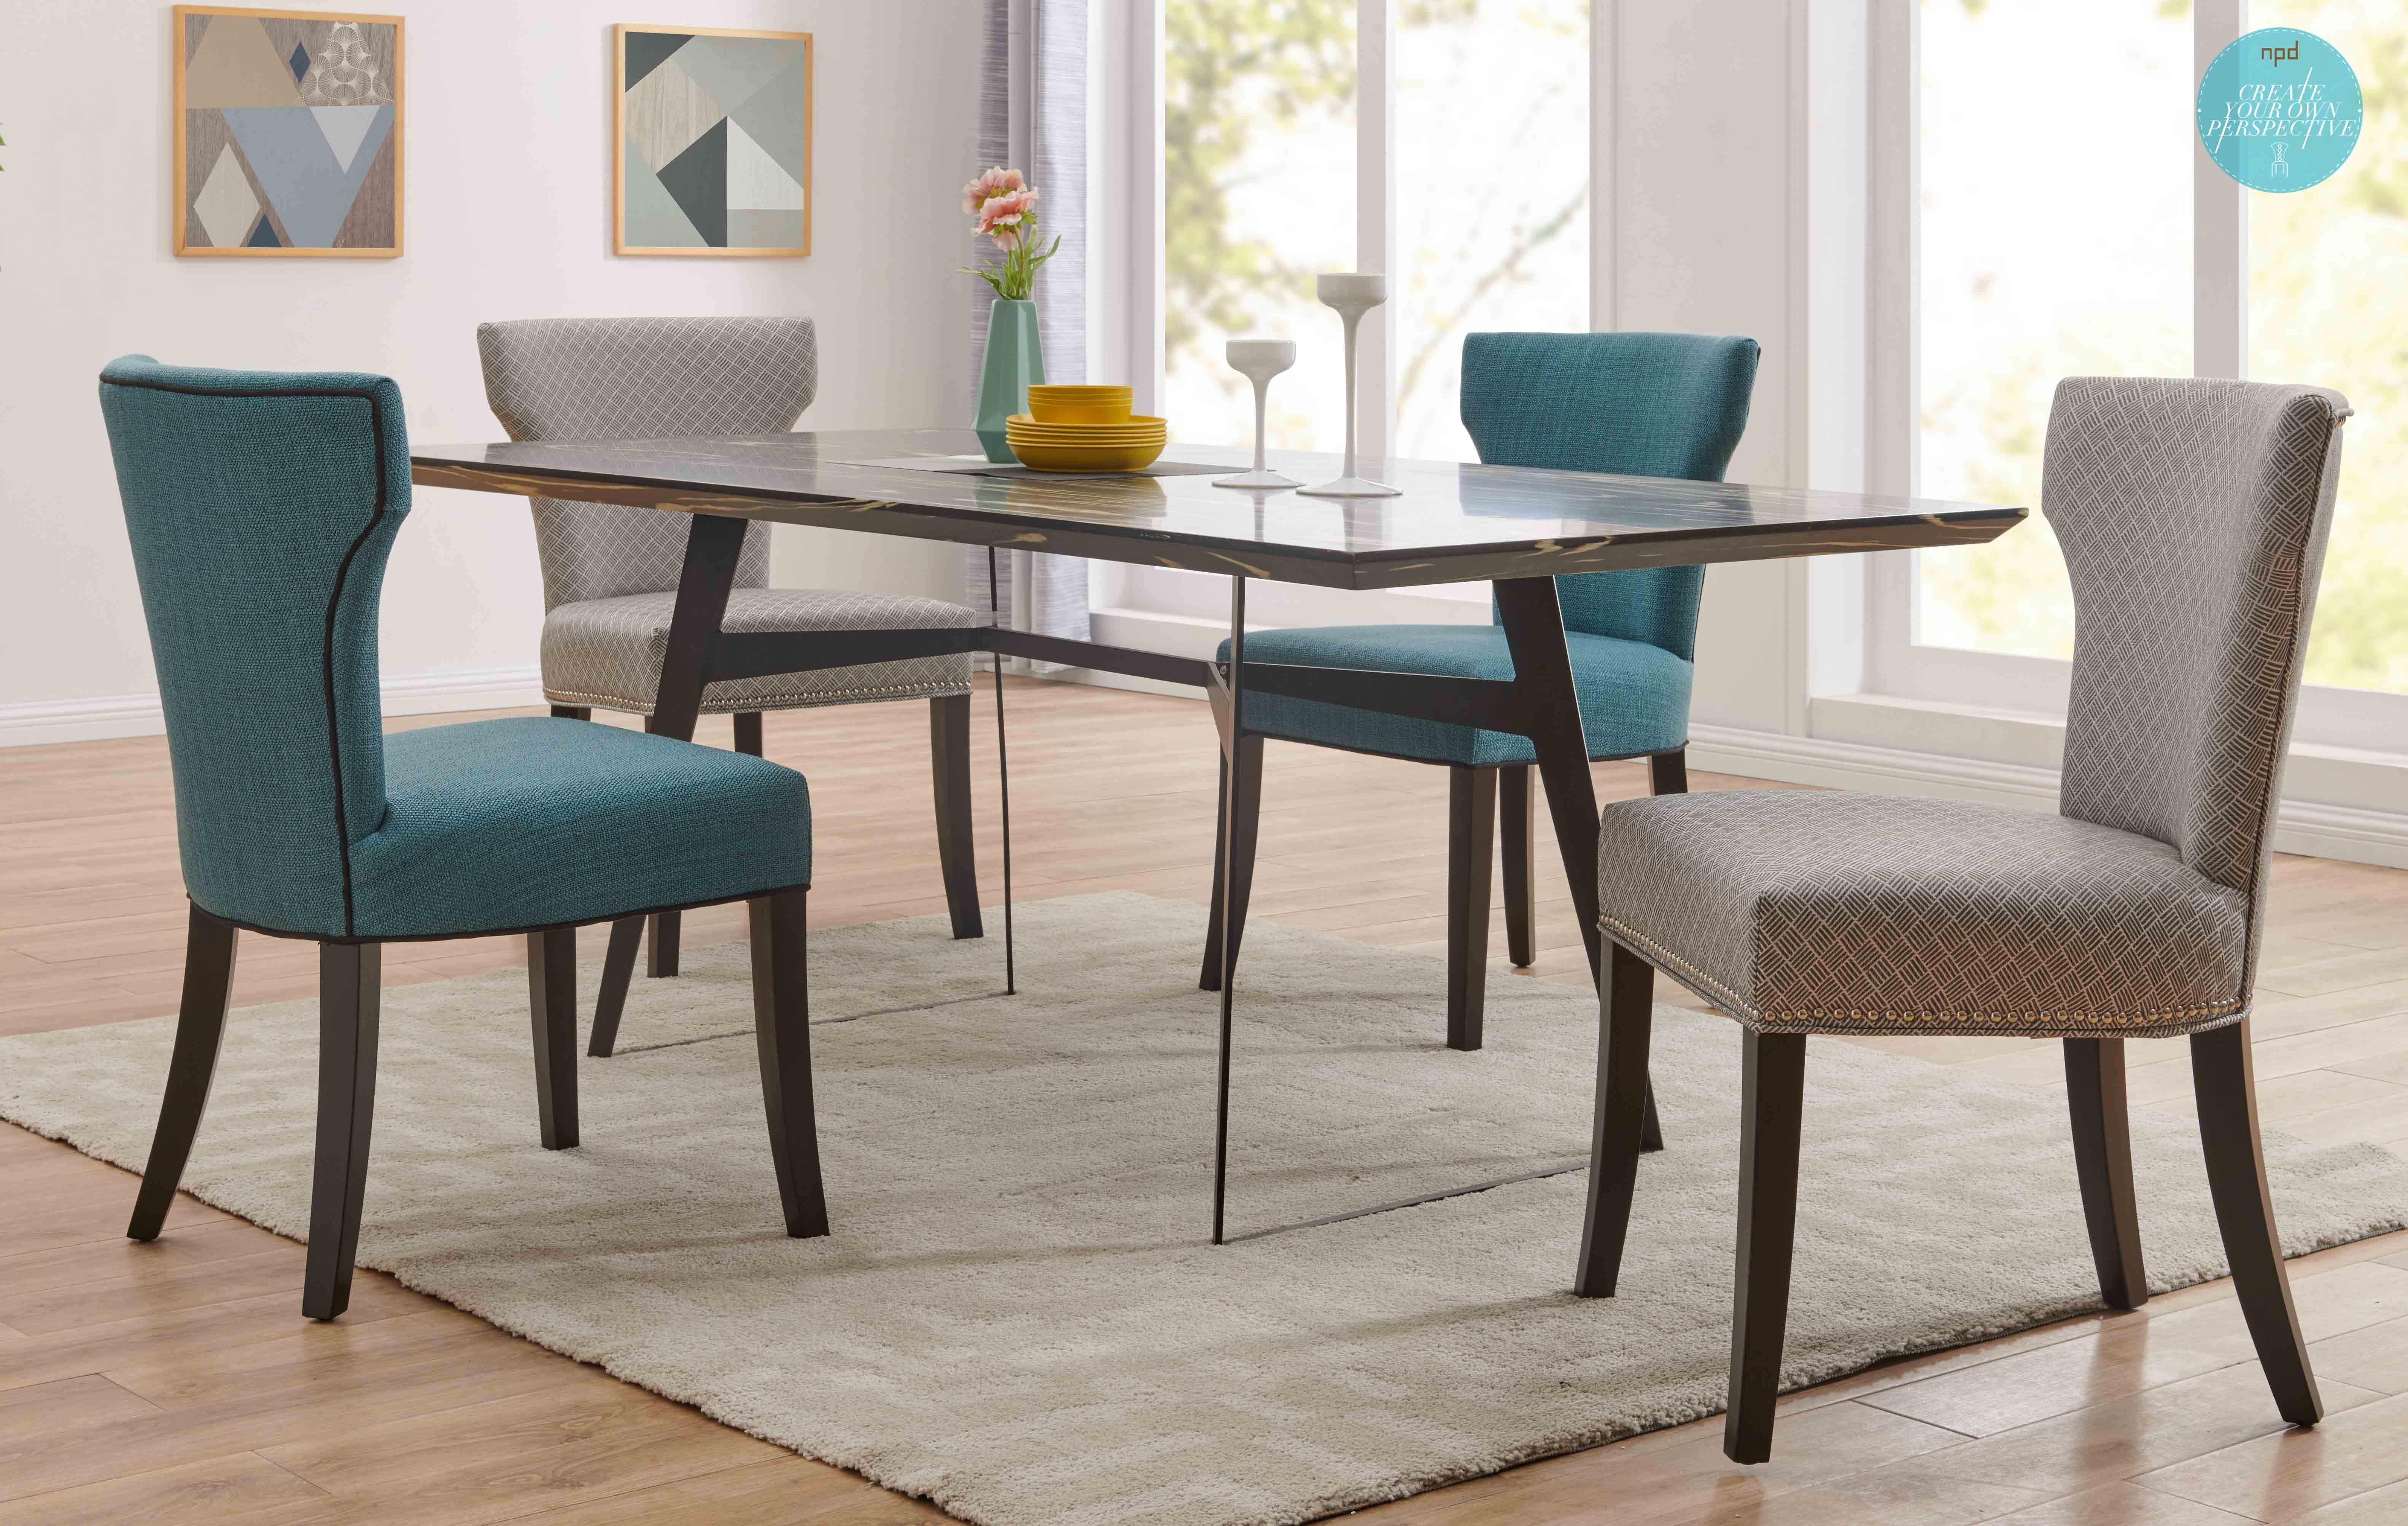 This Is The Side Chair With The Style You Need To Take Your Dining Area To New Heights The Dresden Side Chair Has Dining Chairs Dining Furniture Chair Fabric